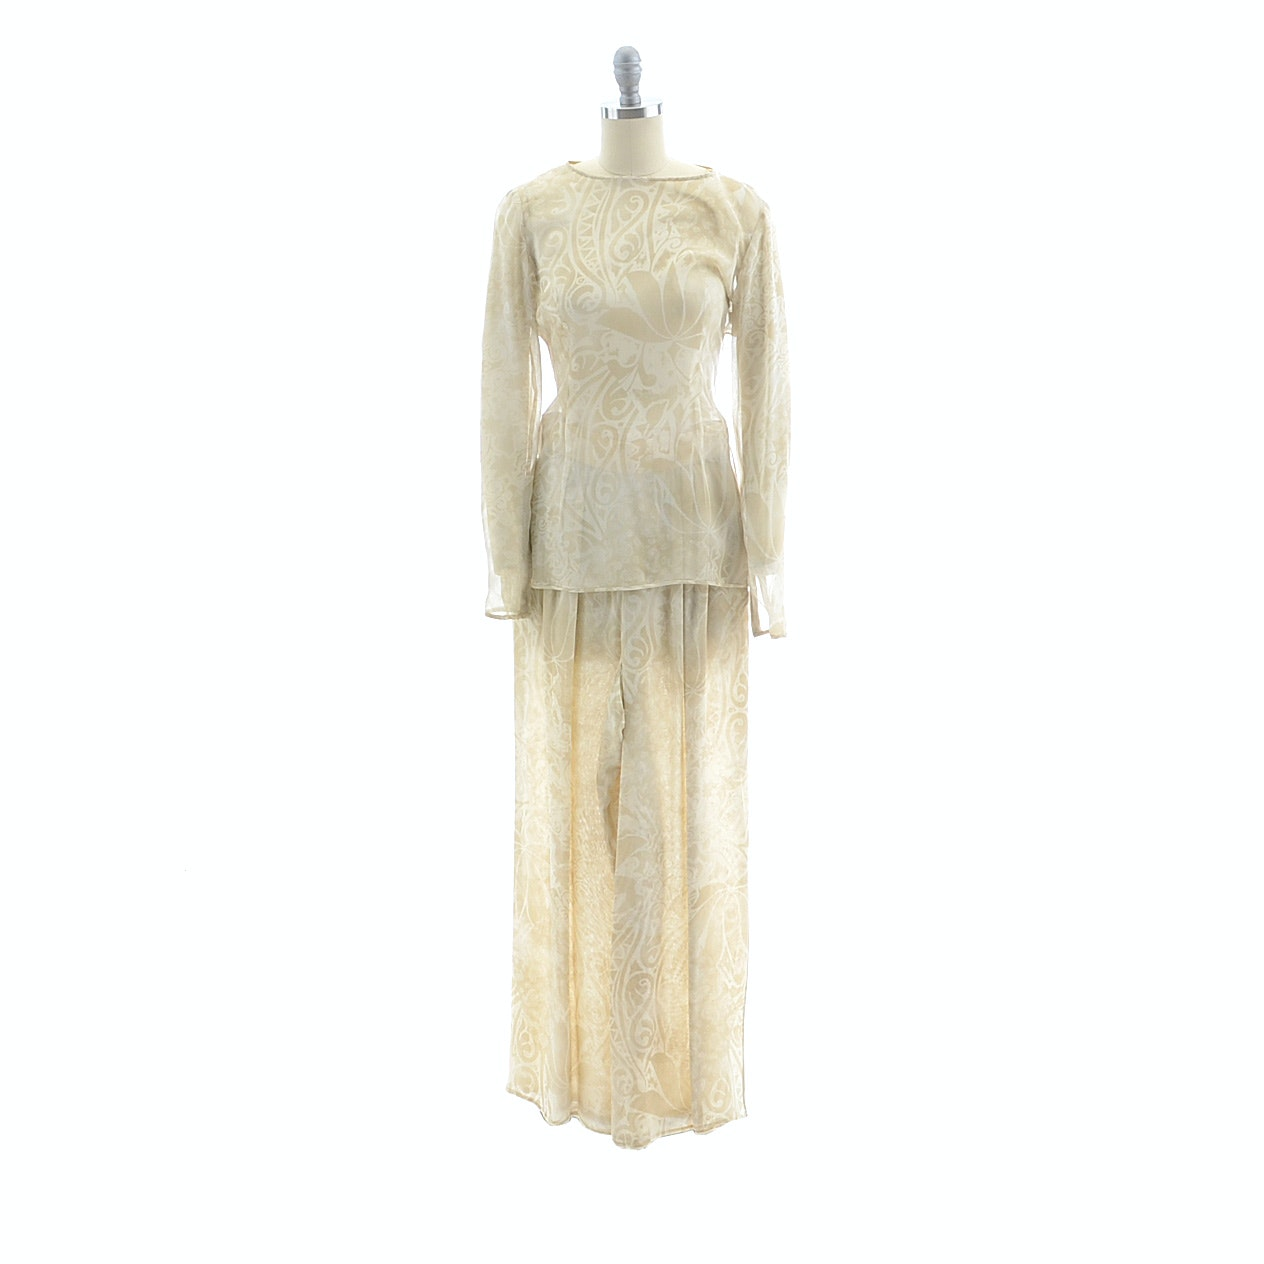 1980s Valentino Boutique Silk Chiffon Print Tunic and Palazzo Pants in Neutral Tones